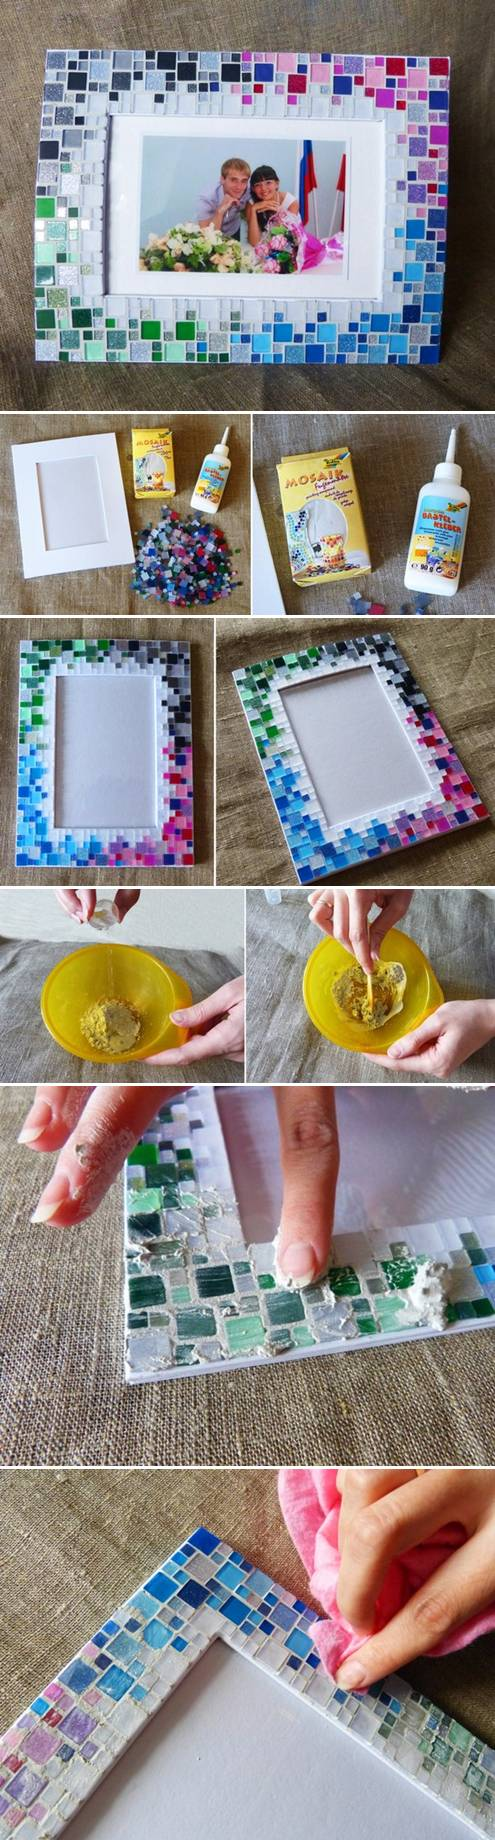 Small mosaic tiles for crafts - Mosaic Tile Frame